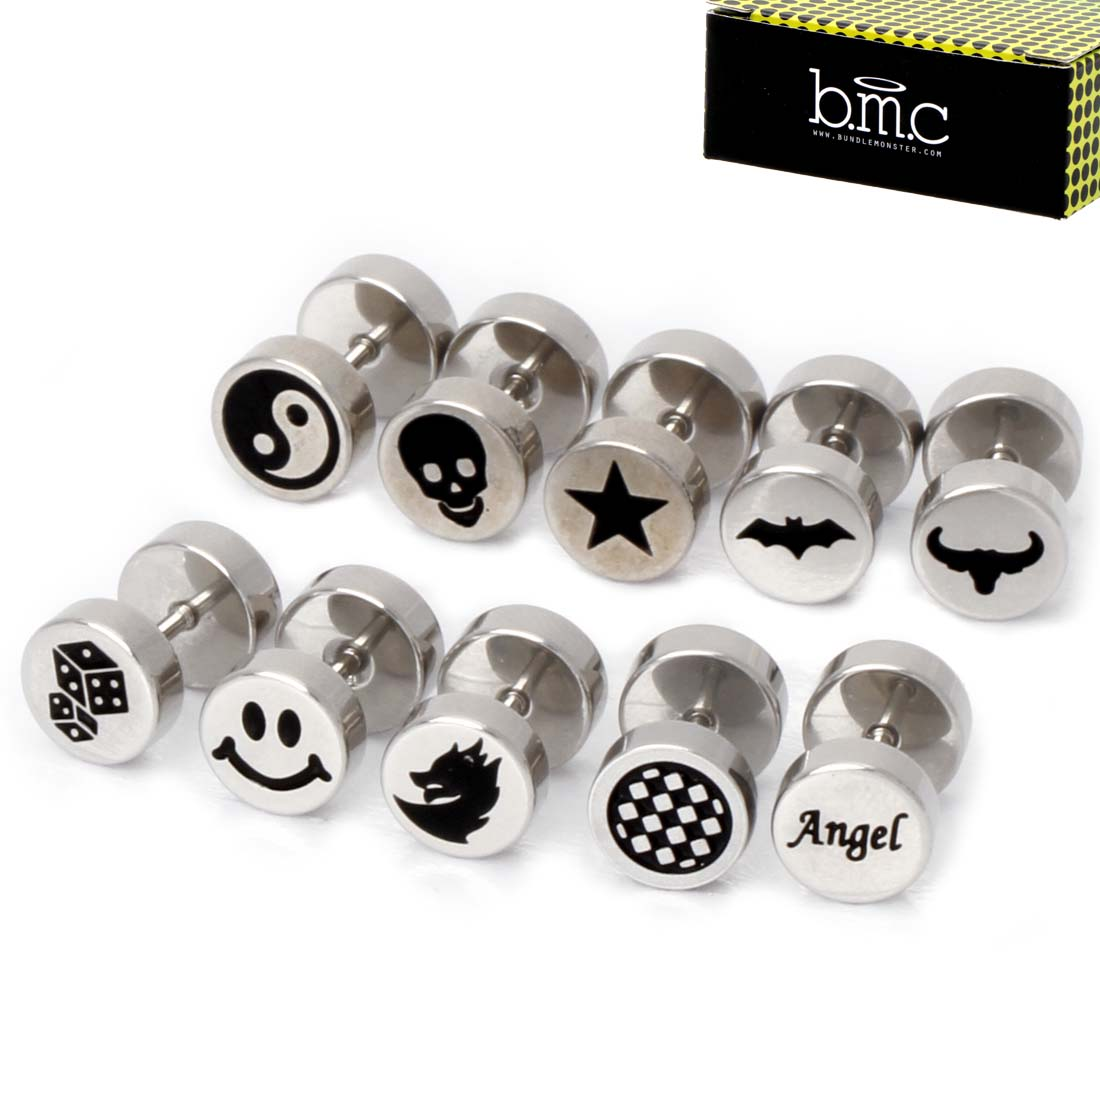 BMC 10 pc Mixed Color Design Stainless Steel Barbell Stud Earring Sets